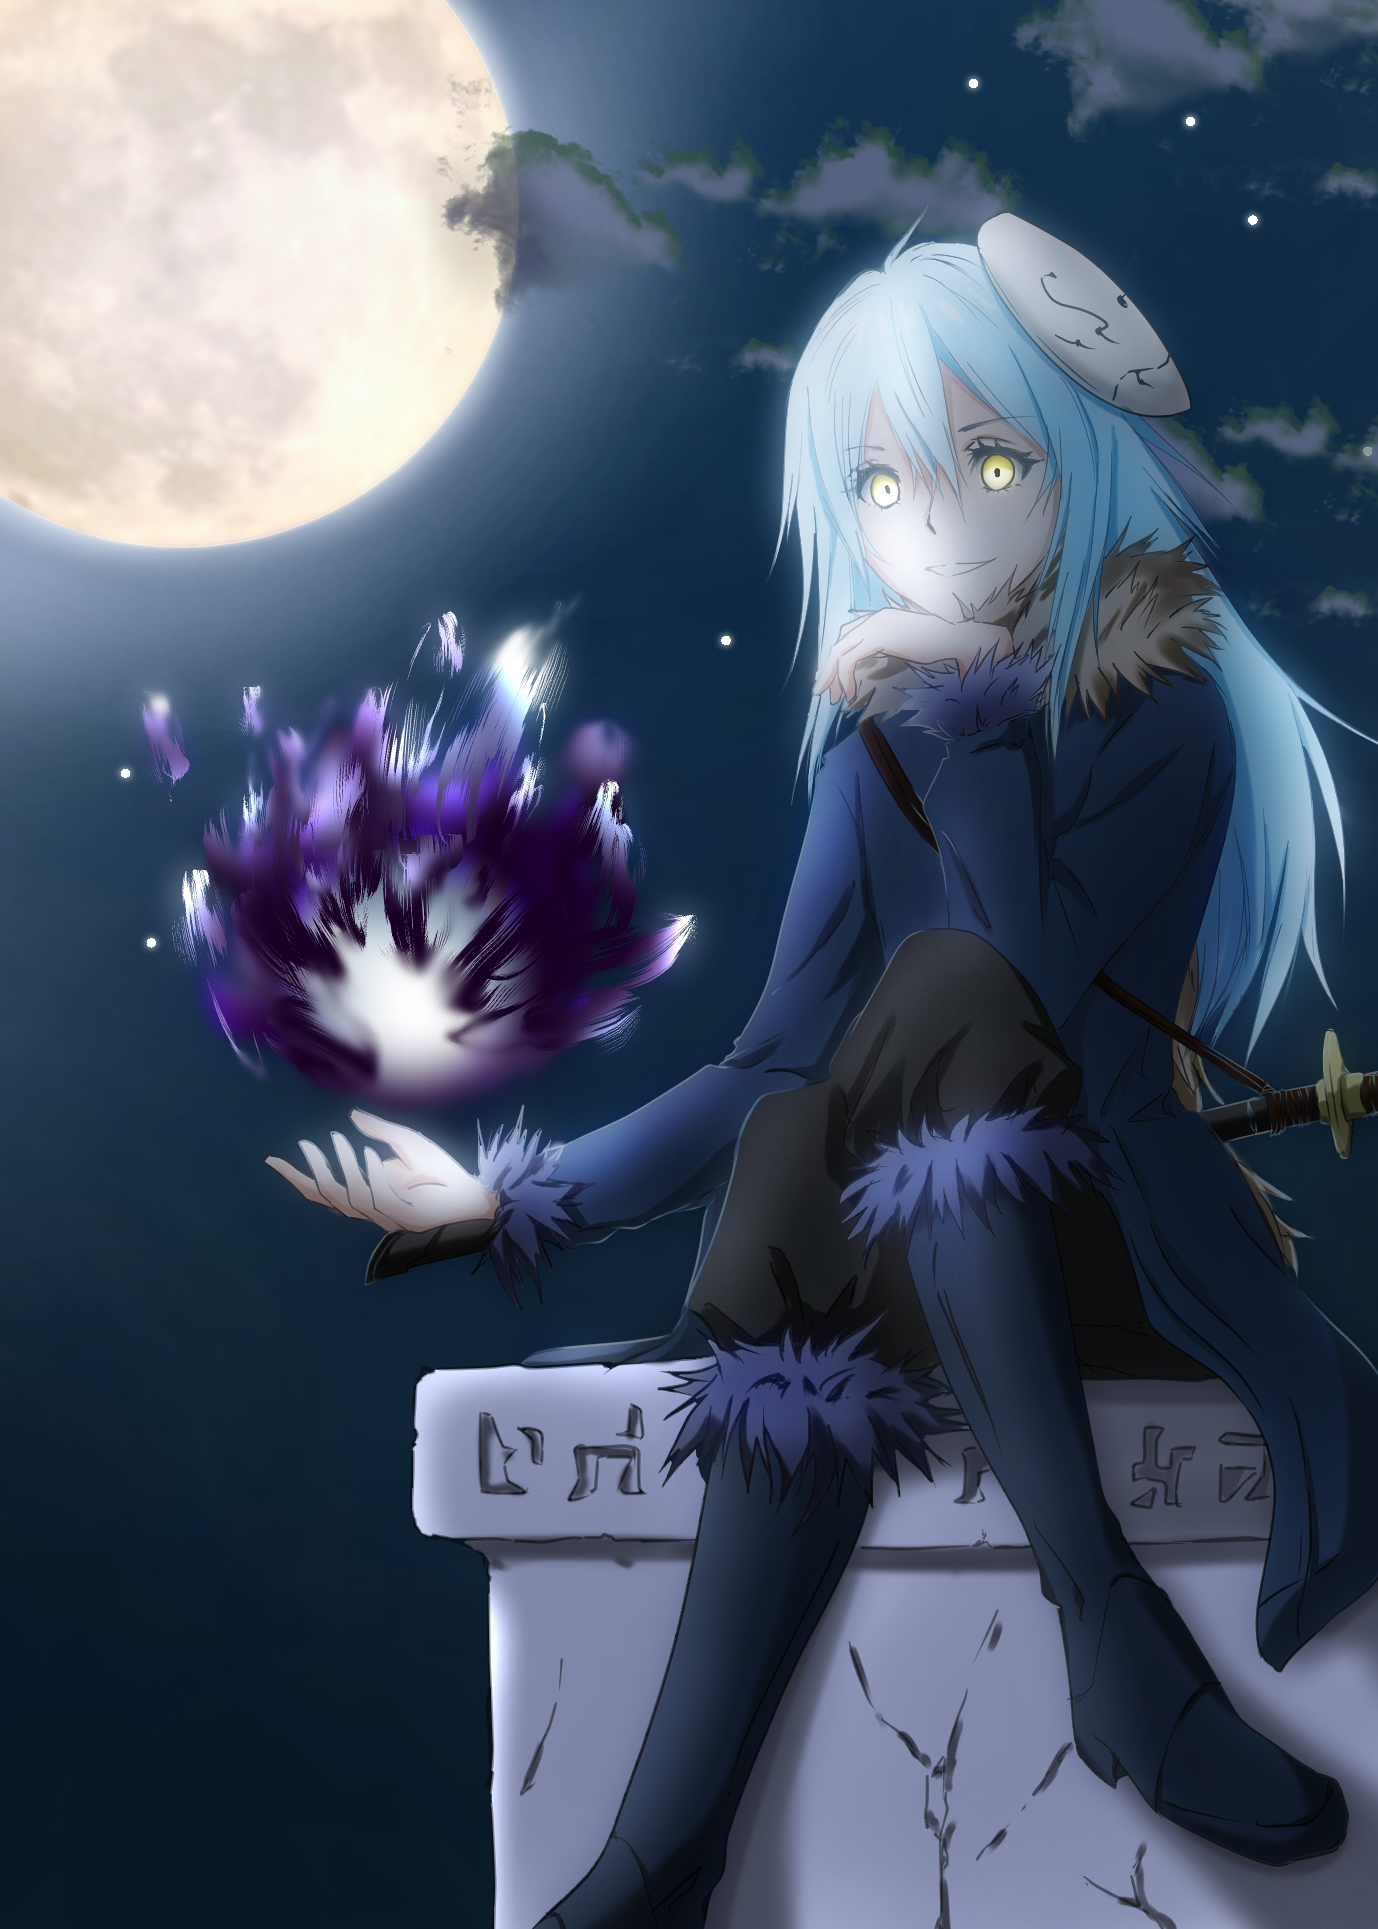 You may be in the position to have to use a catheter following surgery, or if you have issues with your prostate or problems with urinary retention. Rimuru | Anime, Rimuru tempest fanart, Anime characters